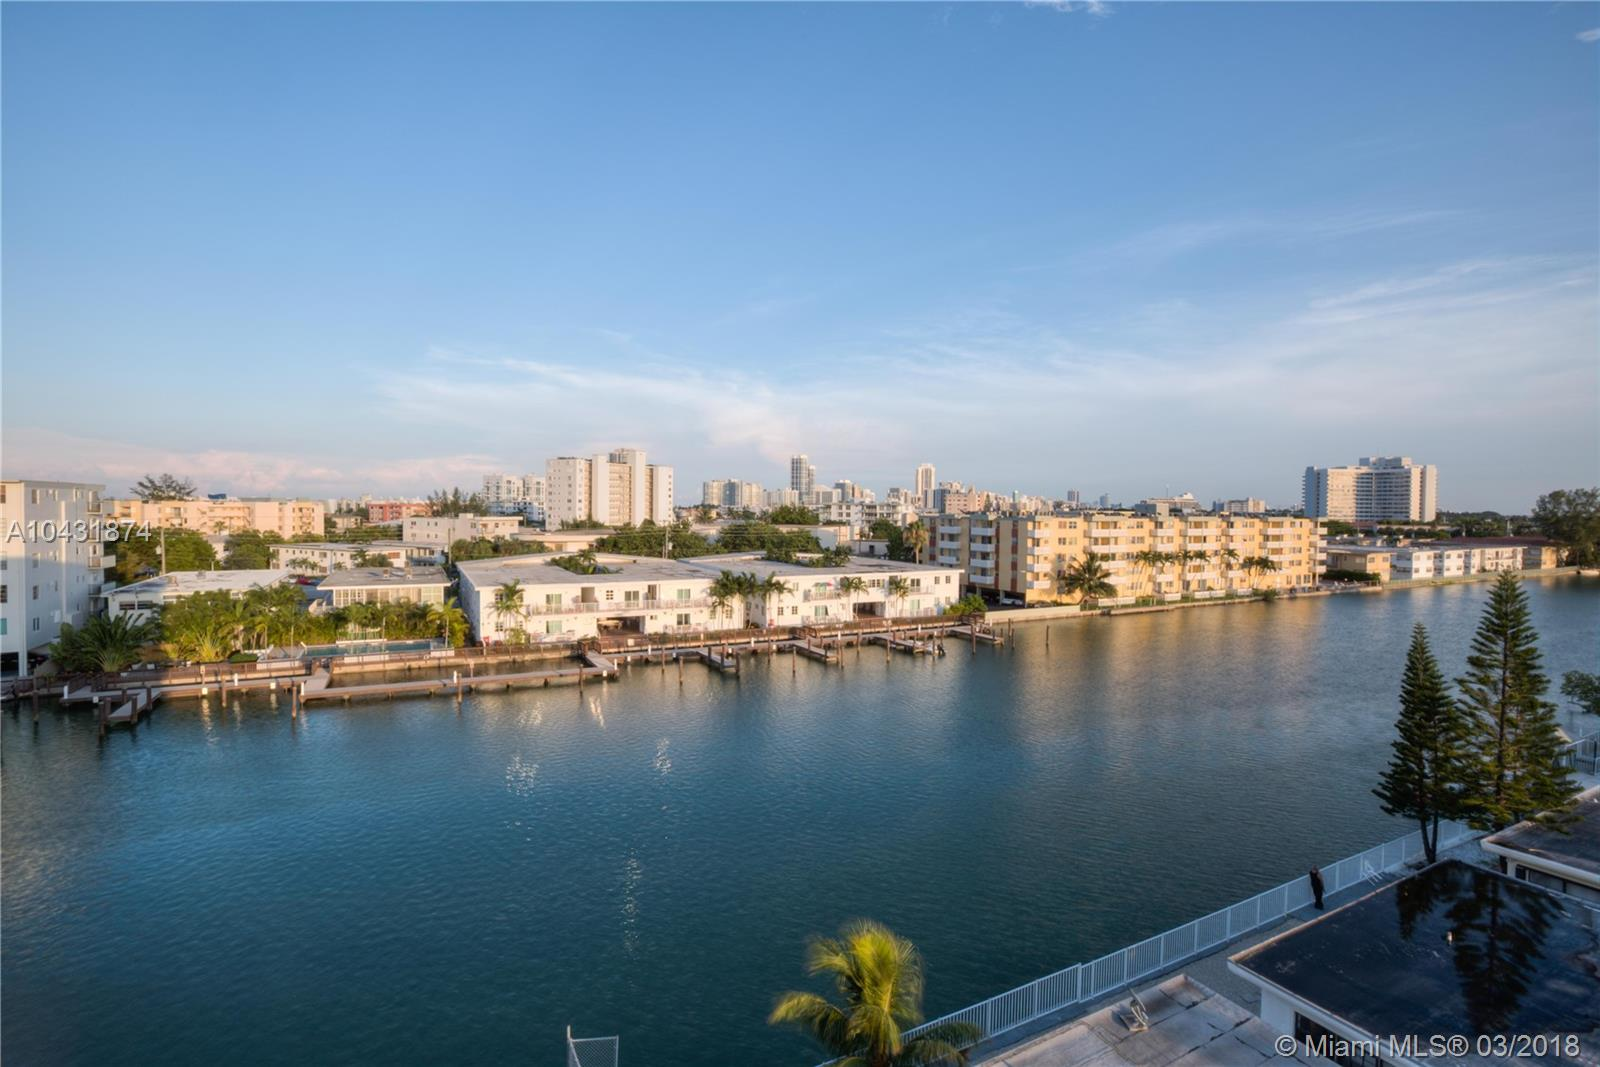 SOUS CONTRAT : APPARTEMENT A MIAMI BEACH